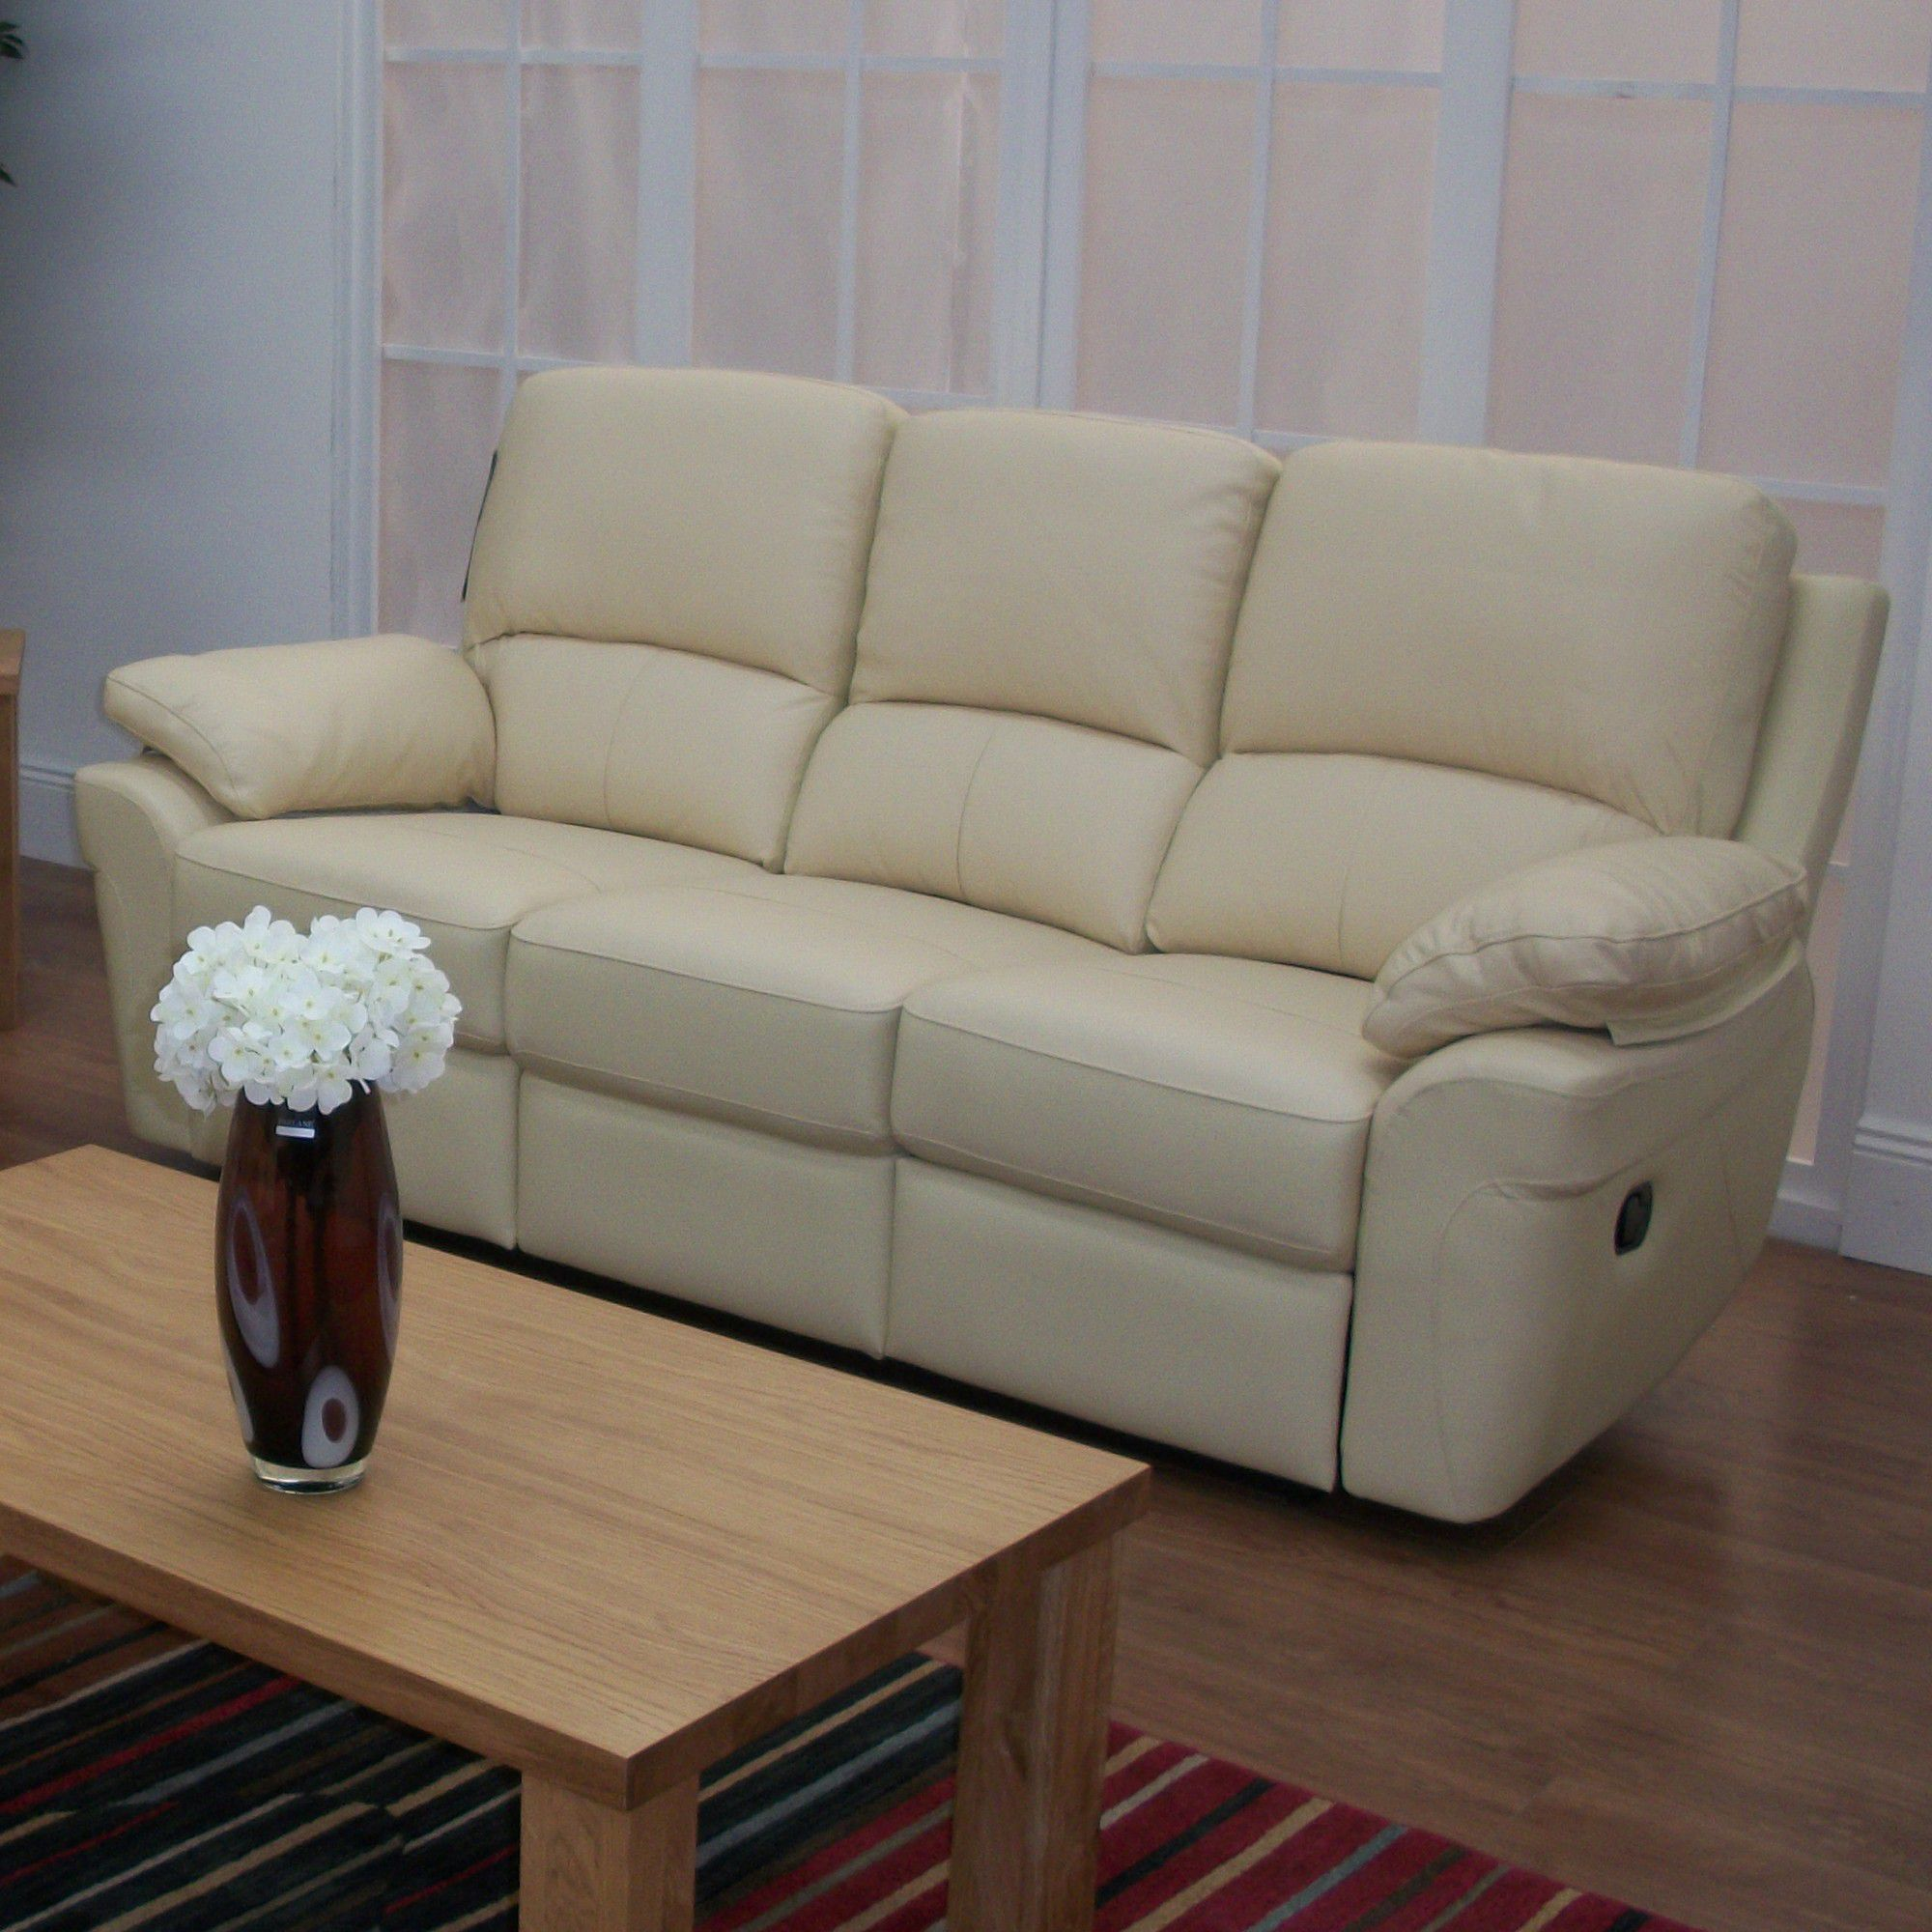 Furniture Link Monzano Three Seat Reclining Sofa in Ivory - Chestnut at Tesco Direct